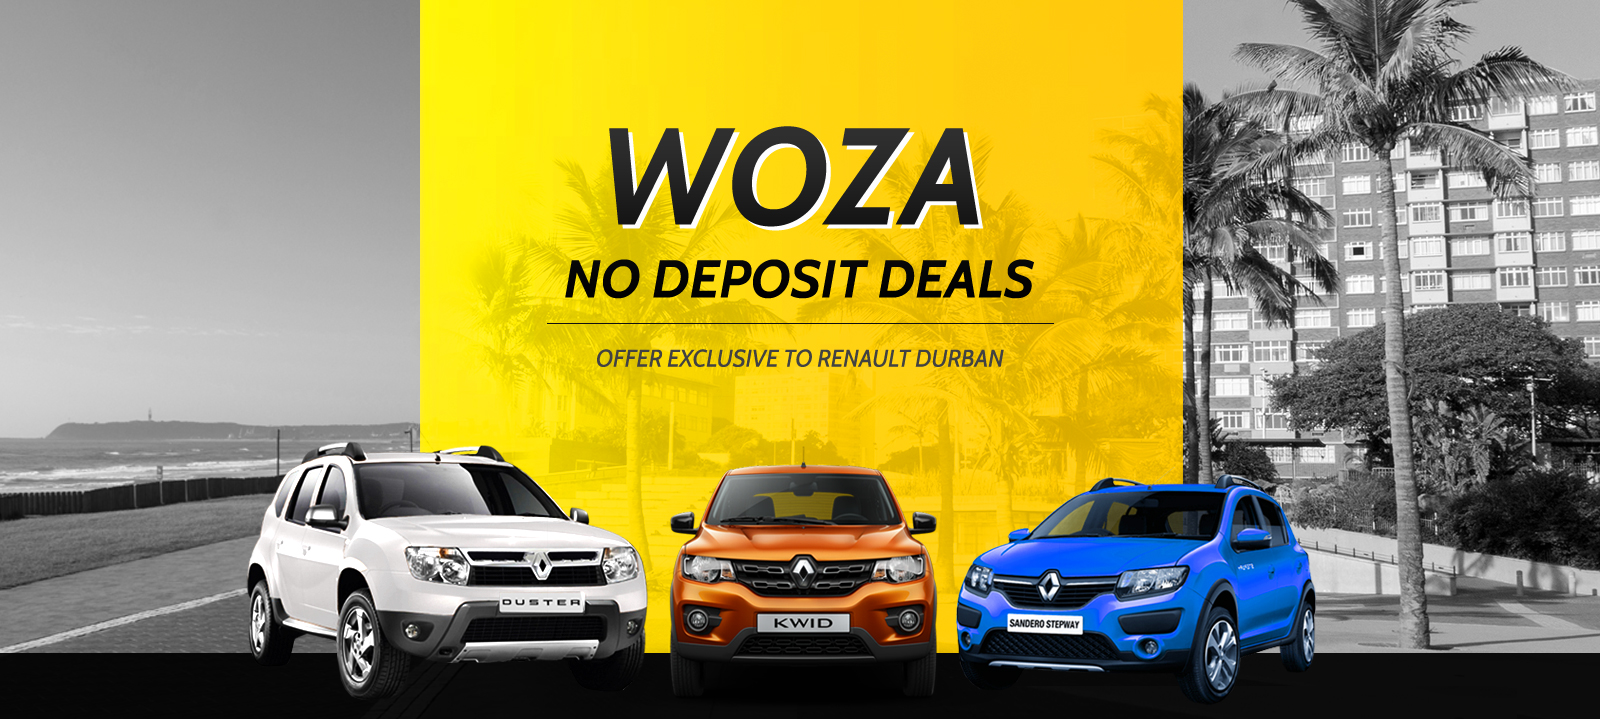 Woza No Deposit Deals - Offer exclusive to Renault Durban